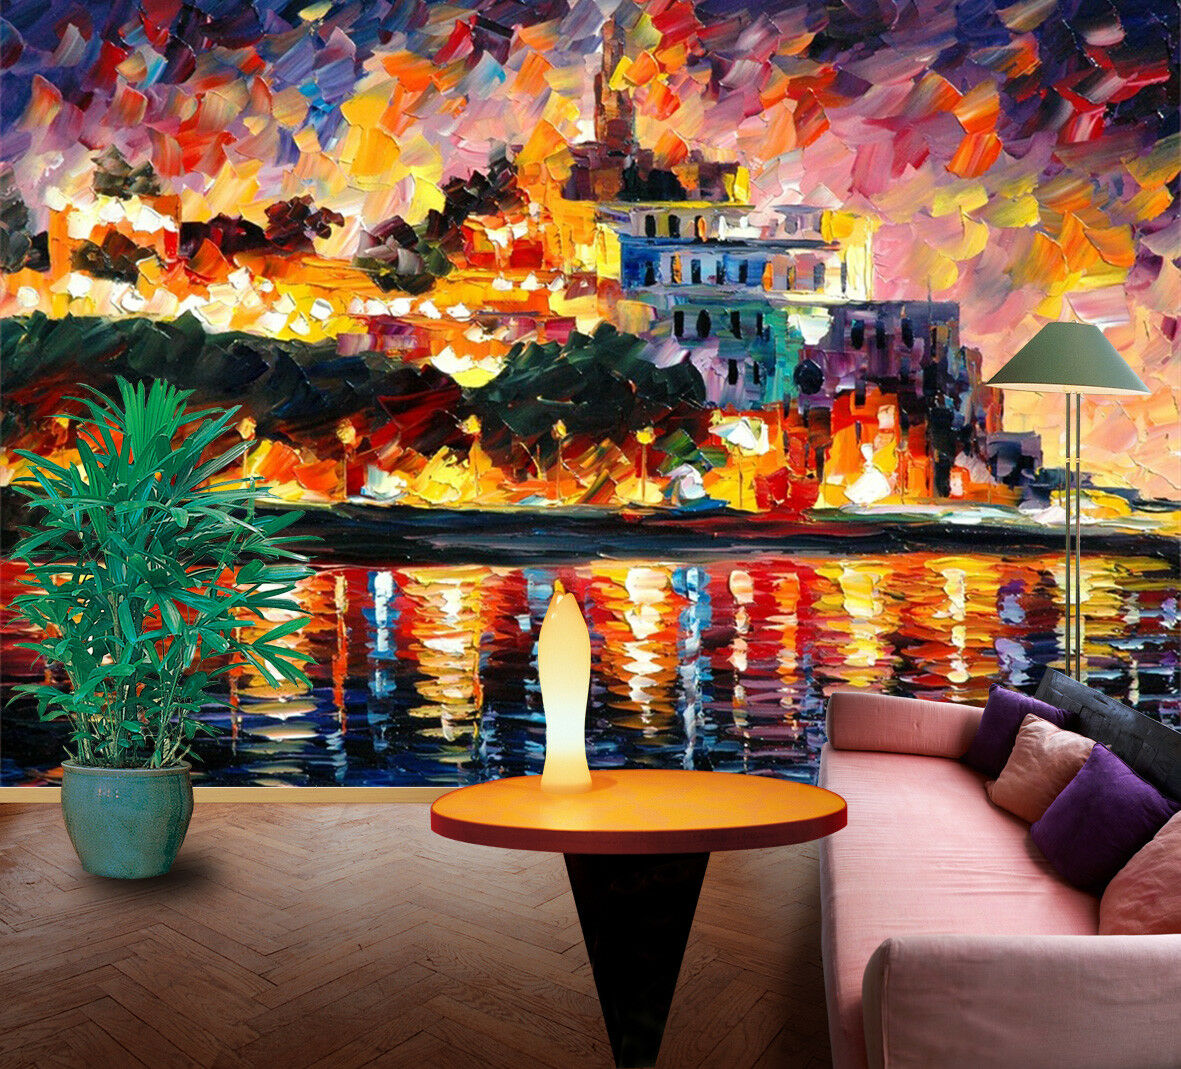 3D Painting 451 Wallpaper Murals Wall Print Wallpaper Mural AJ WALL AU Kyra